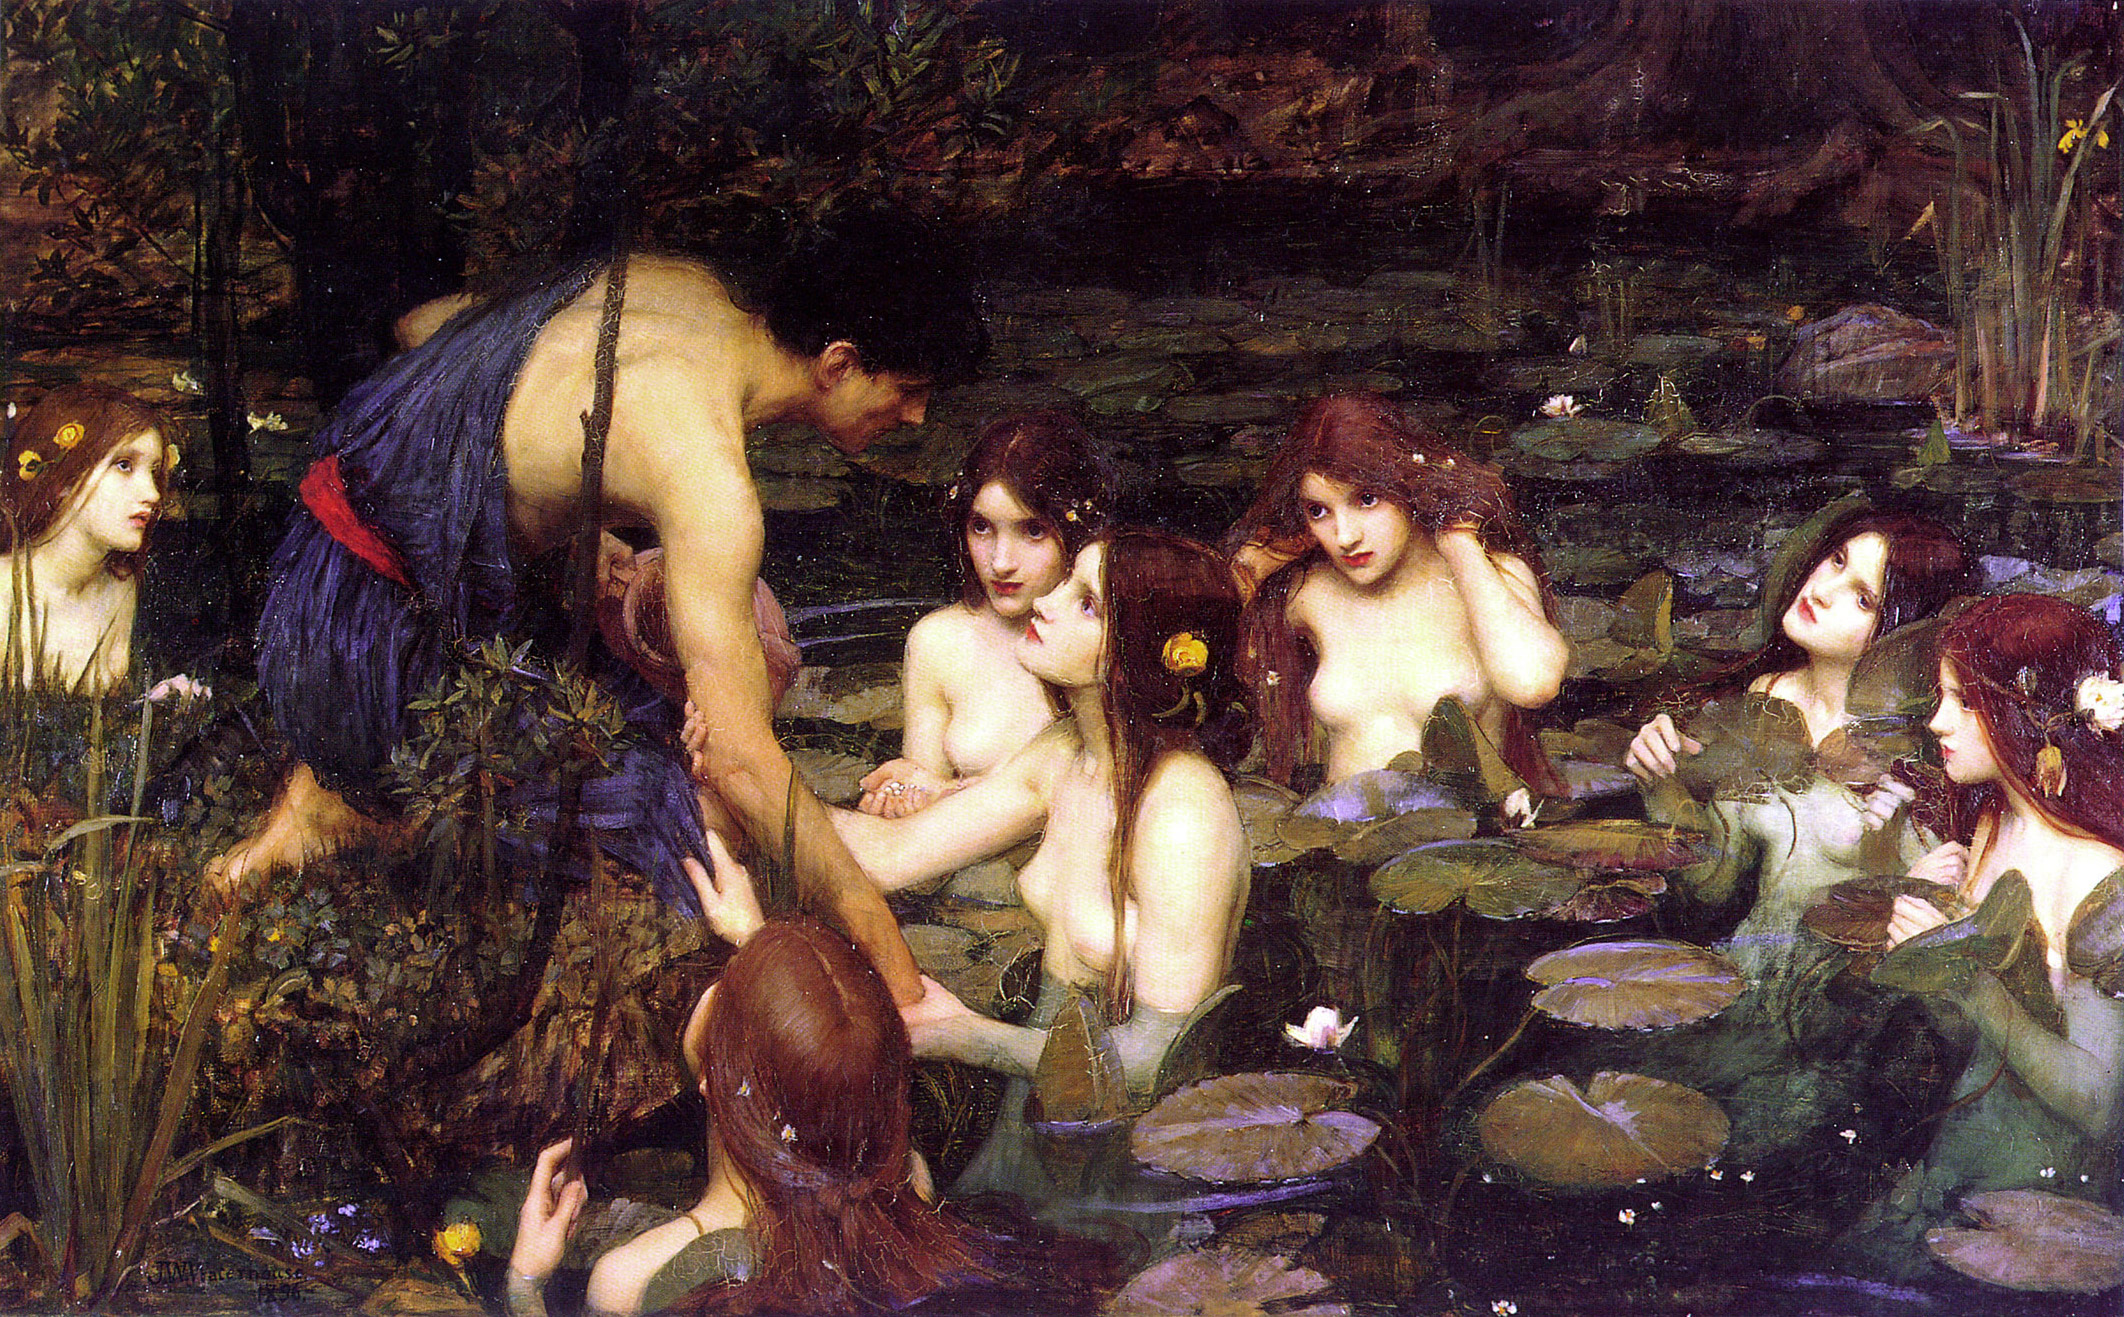 https://upload.wikimedia.org/wikipedia/commons/b/bd/Waterhouse_Hylas_and_the_Nymphs_Manchester_Art_Gallery_1896.15.jpg